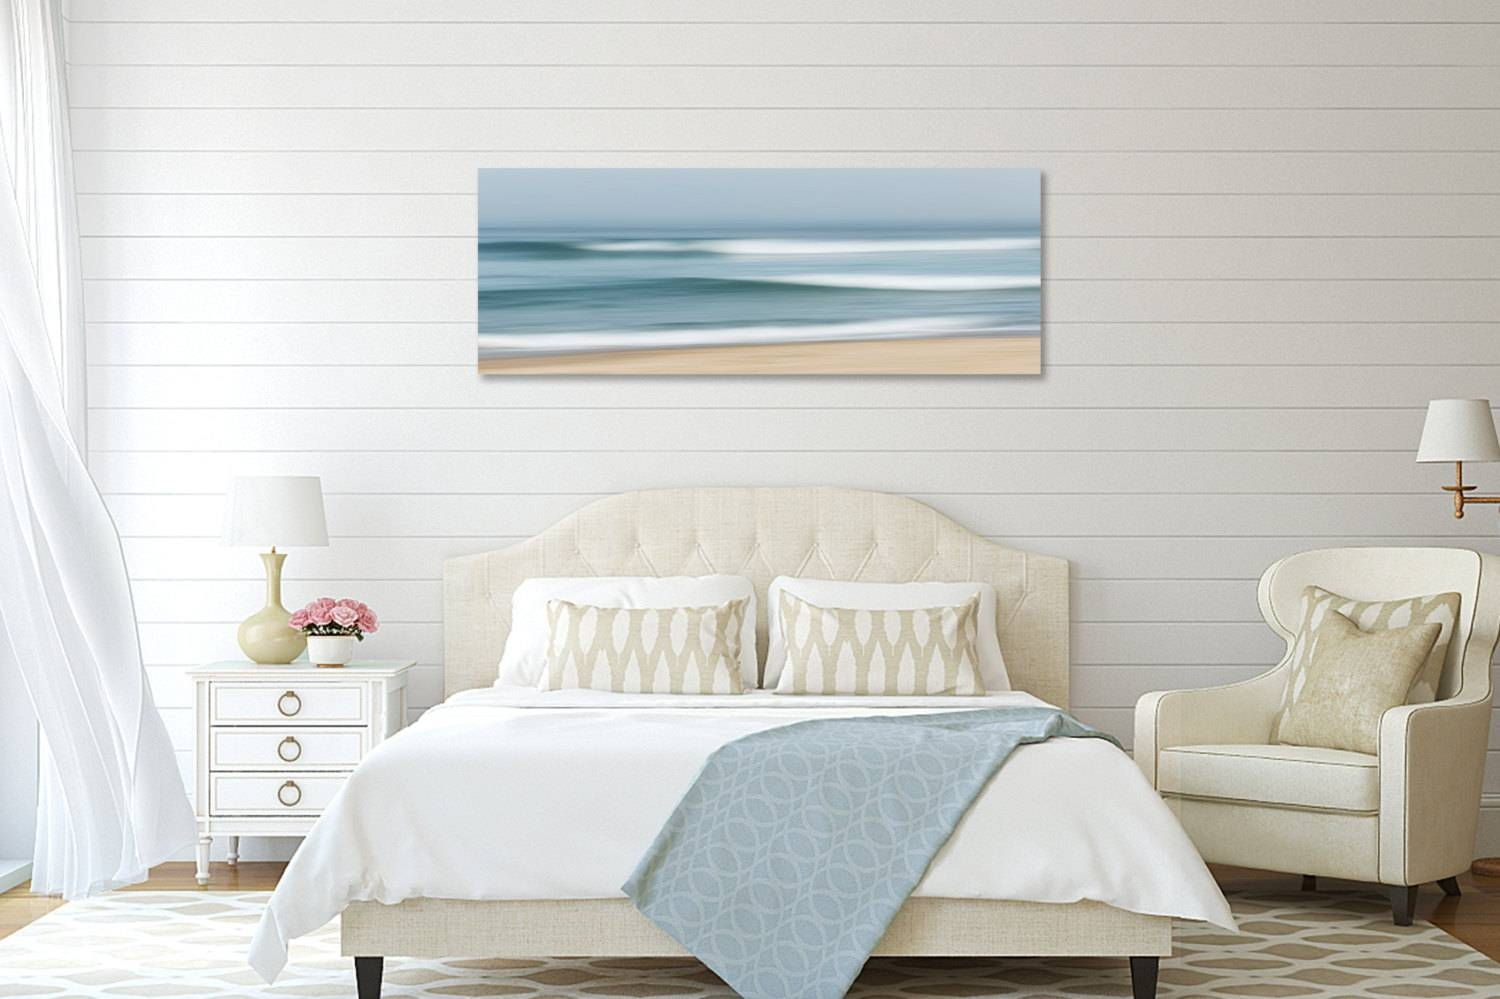 Large Abstract Beach Canvas Wall Art Ocean Seascape Intended For Most Up To Date Nautical Canvas Wall Art (Gallery 10 of 20)